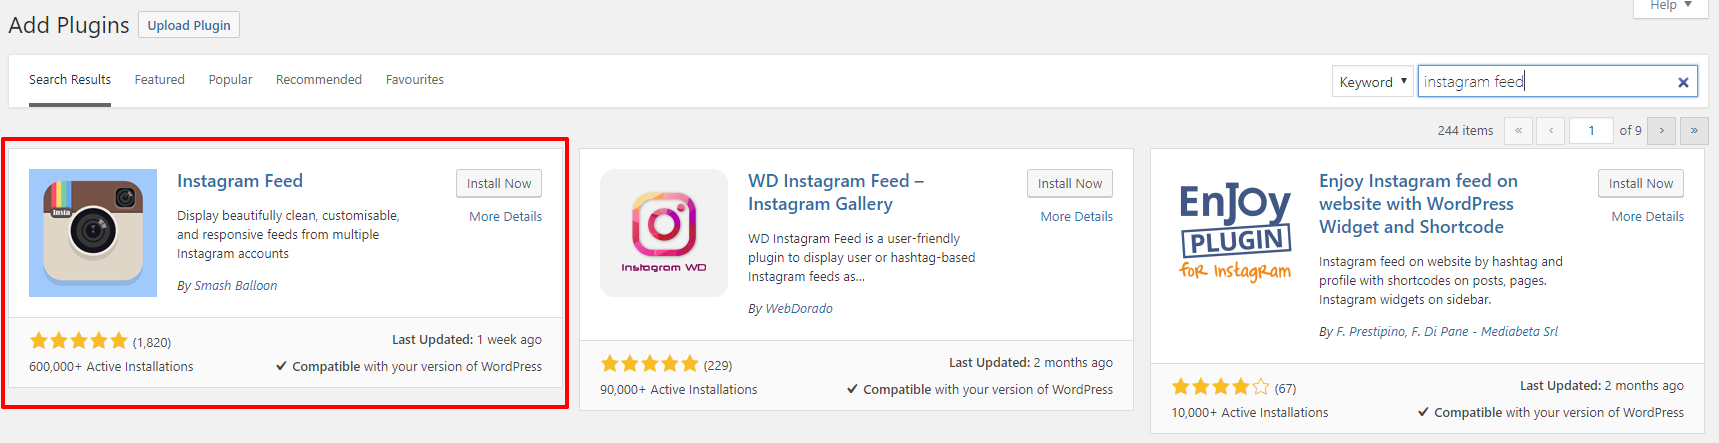 Instagram feed plugin for WordPress | | HollyPryce.com